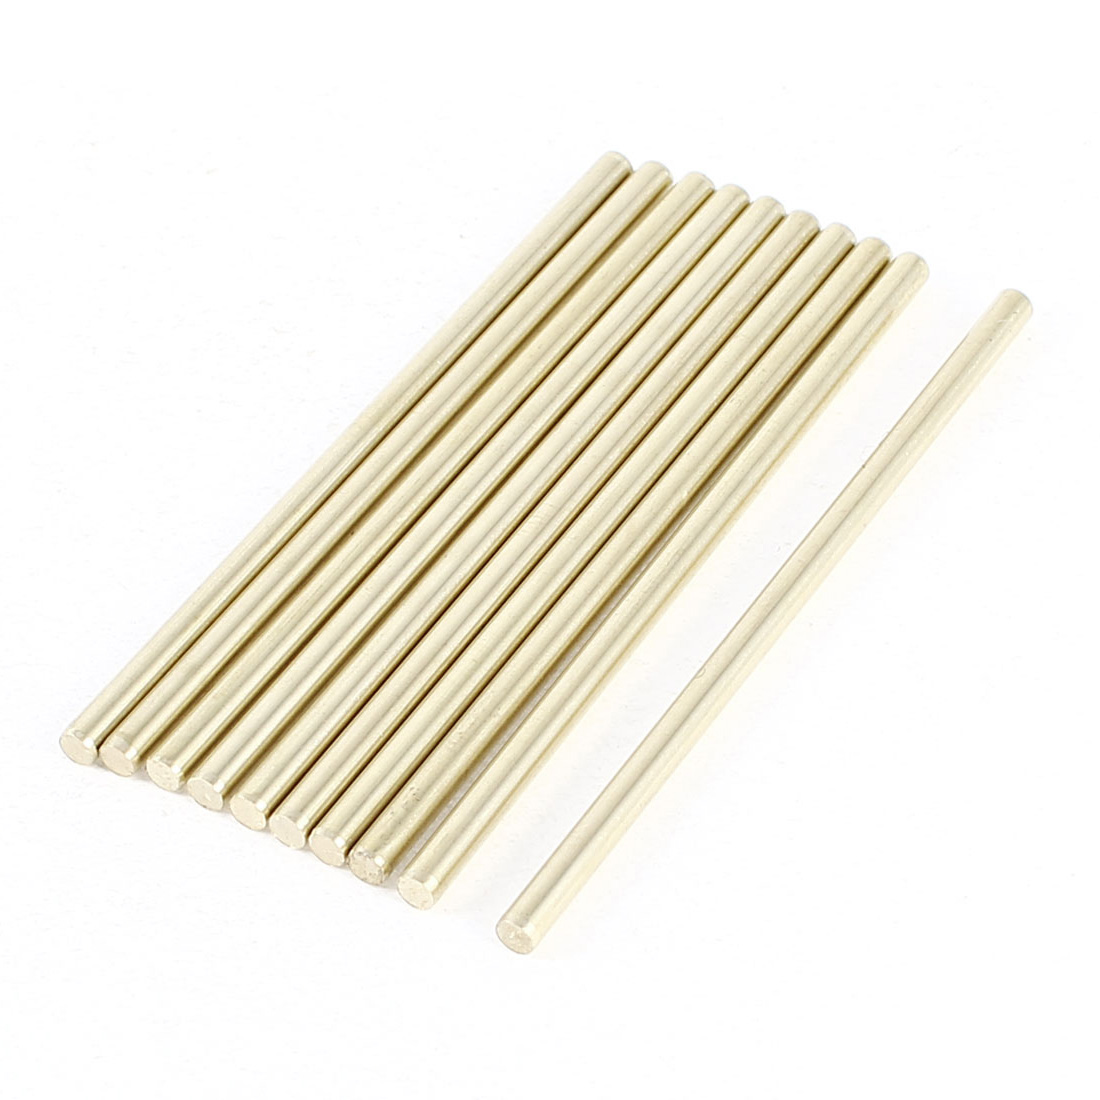 10 Pcs Car Helicopter Model Toy DIY Brass Axles Rod Bars 3mm x 70mm